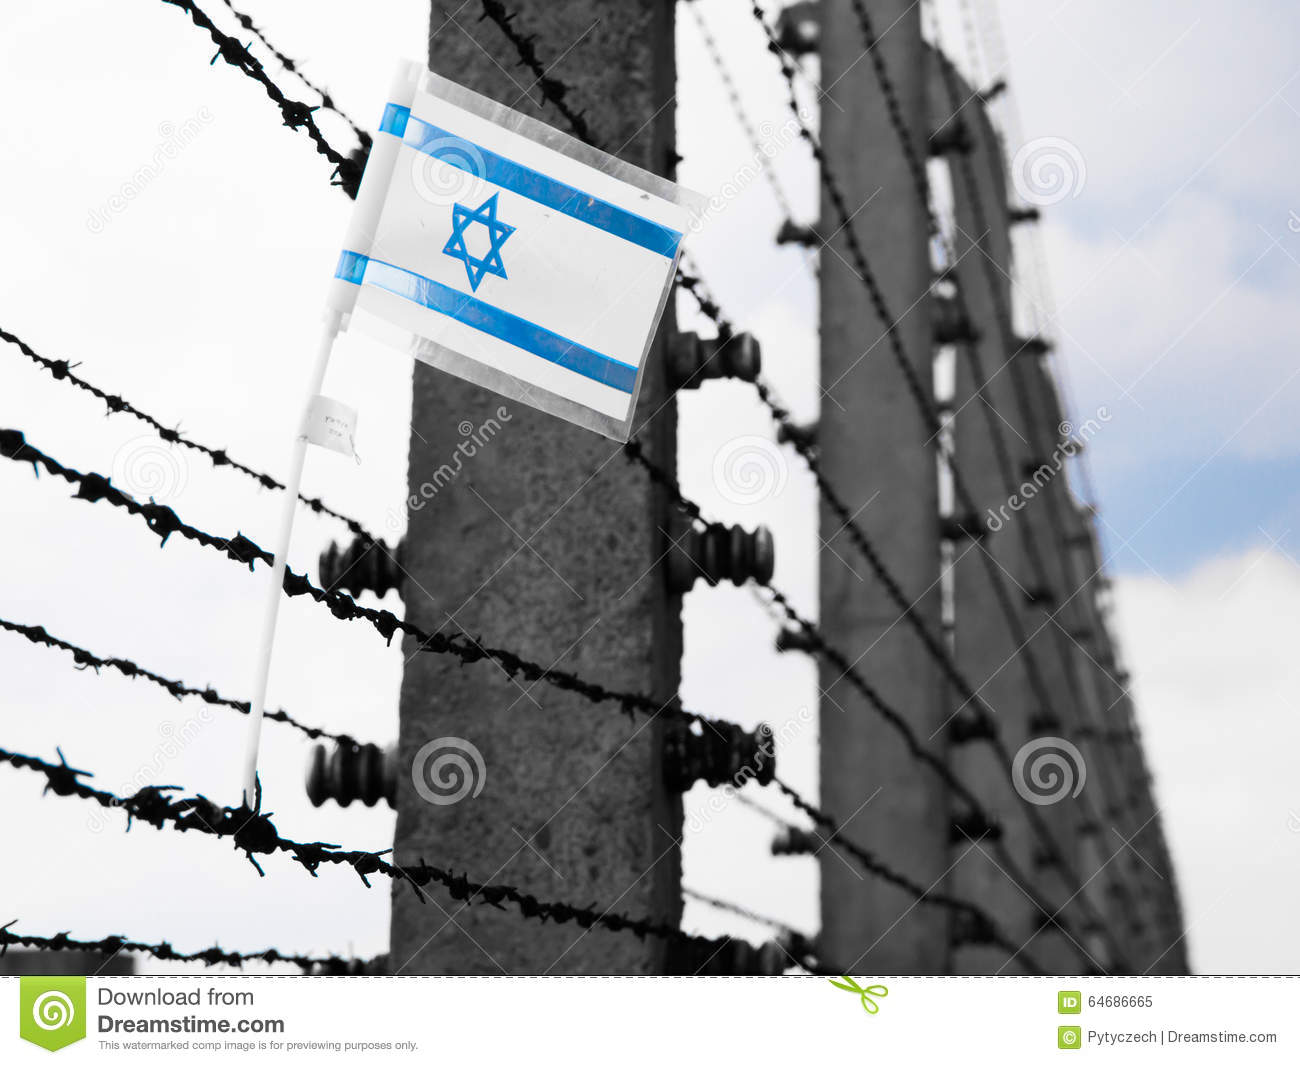 emblem single jewish girls For the jewish people the swastika is a symbol of fear, of suppression, and of extermination it's a symbol that we will never ever be able to change, says 93-year-old holocaust survivor freddie.